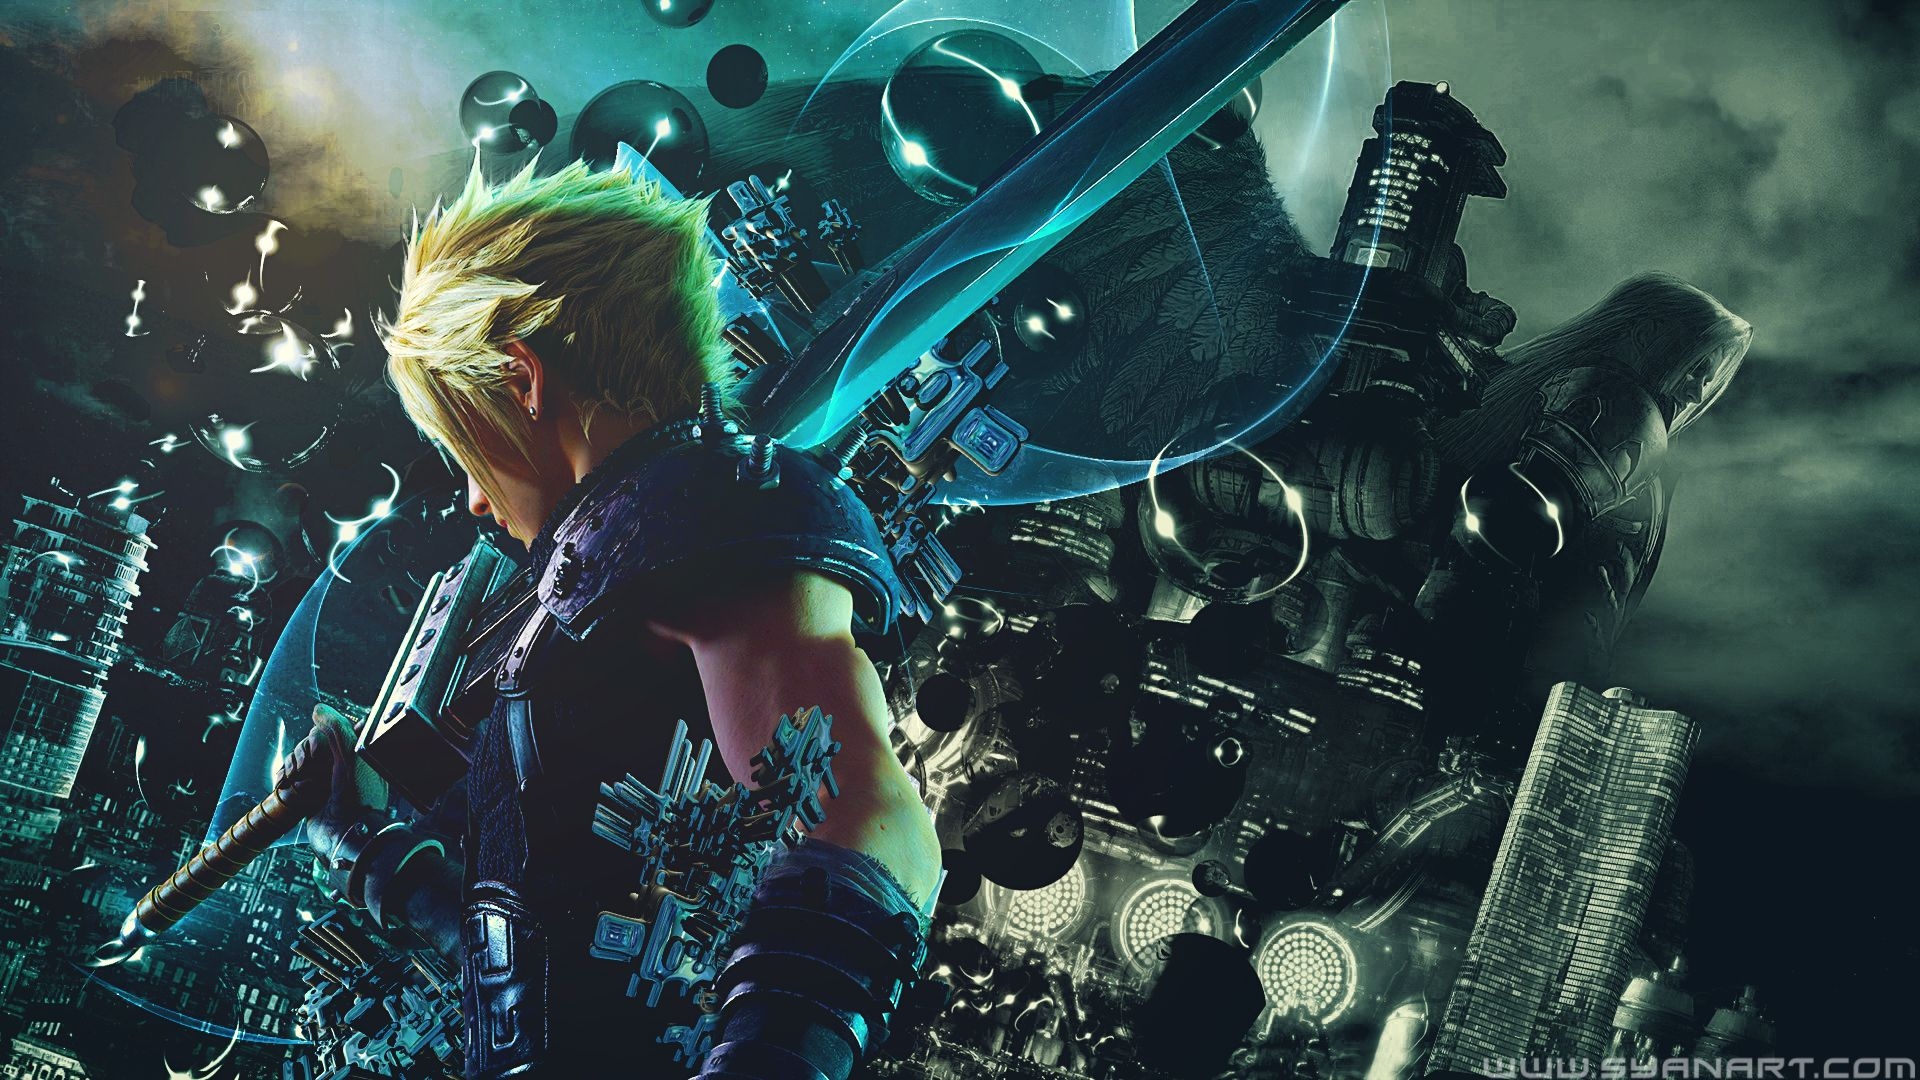 Final Fantasy Vii Remake Wallpapers Top Free Final Fantasy Vii